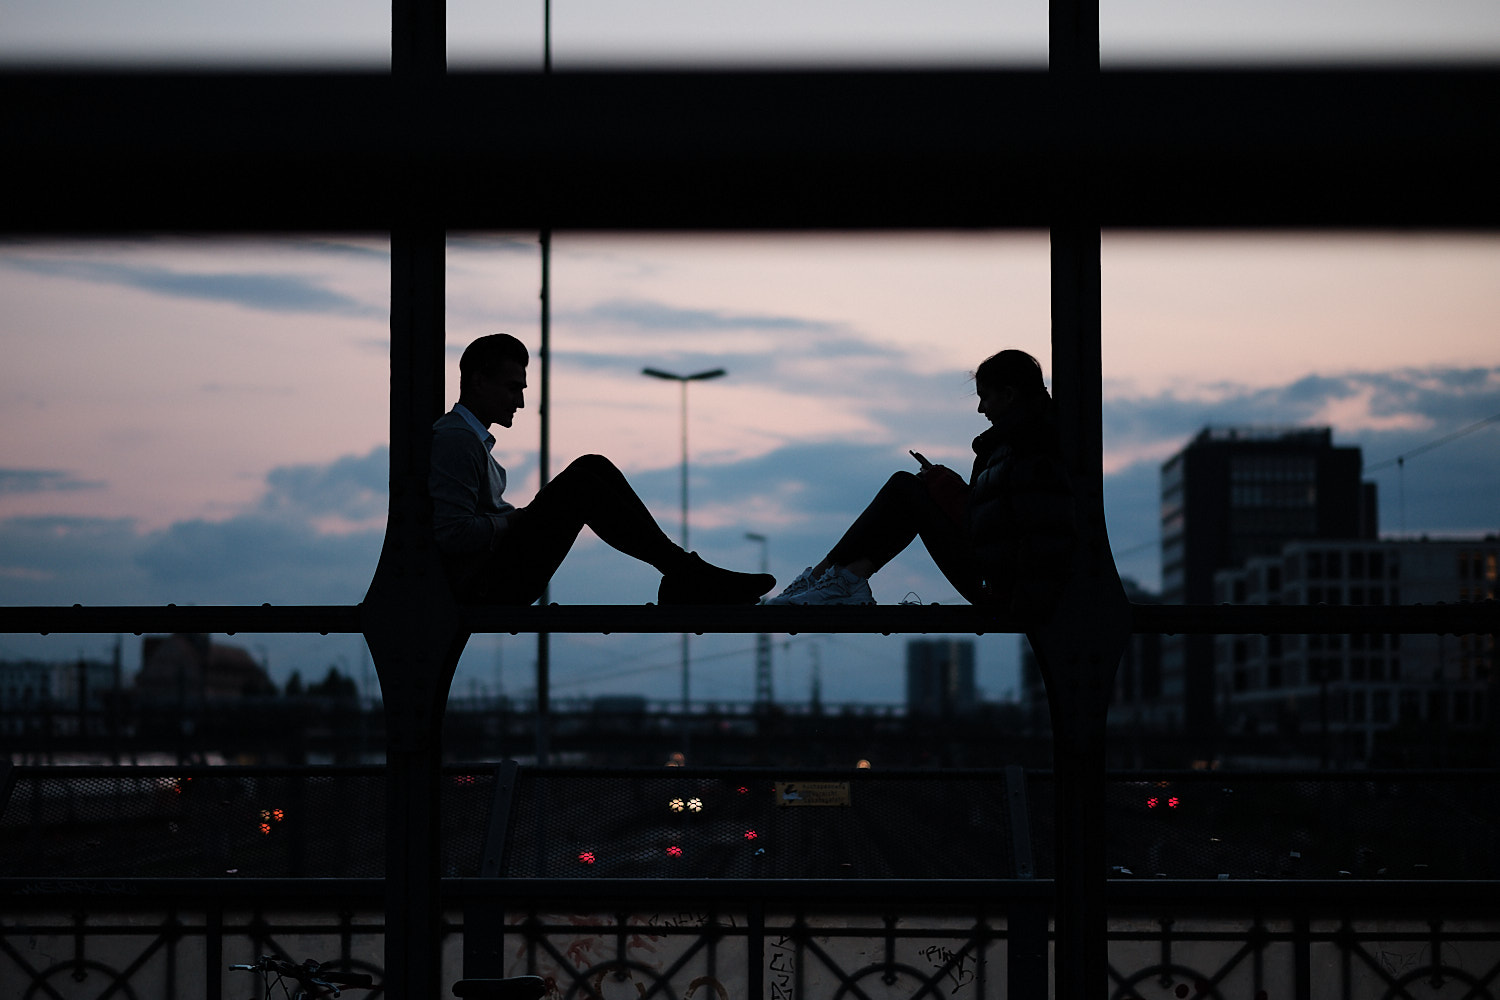 A couple chat and check their smartphones perched over a beam at the Hackerbrücke bridge. In the background the sunset blue sky sets them as dark profiles.